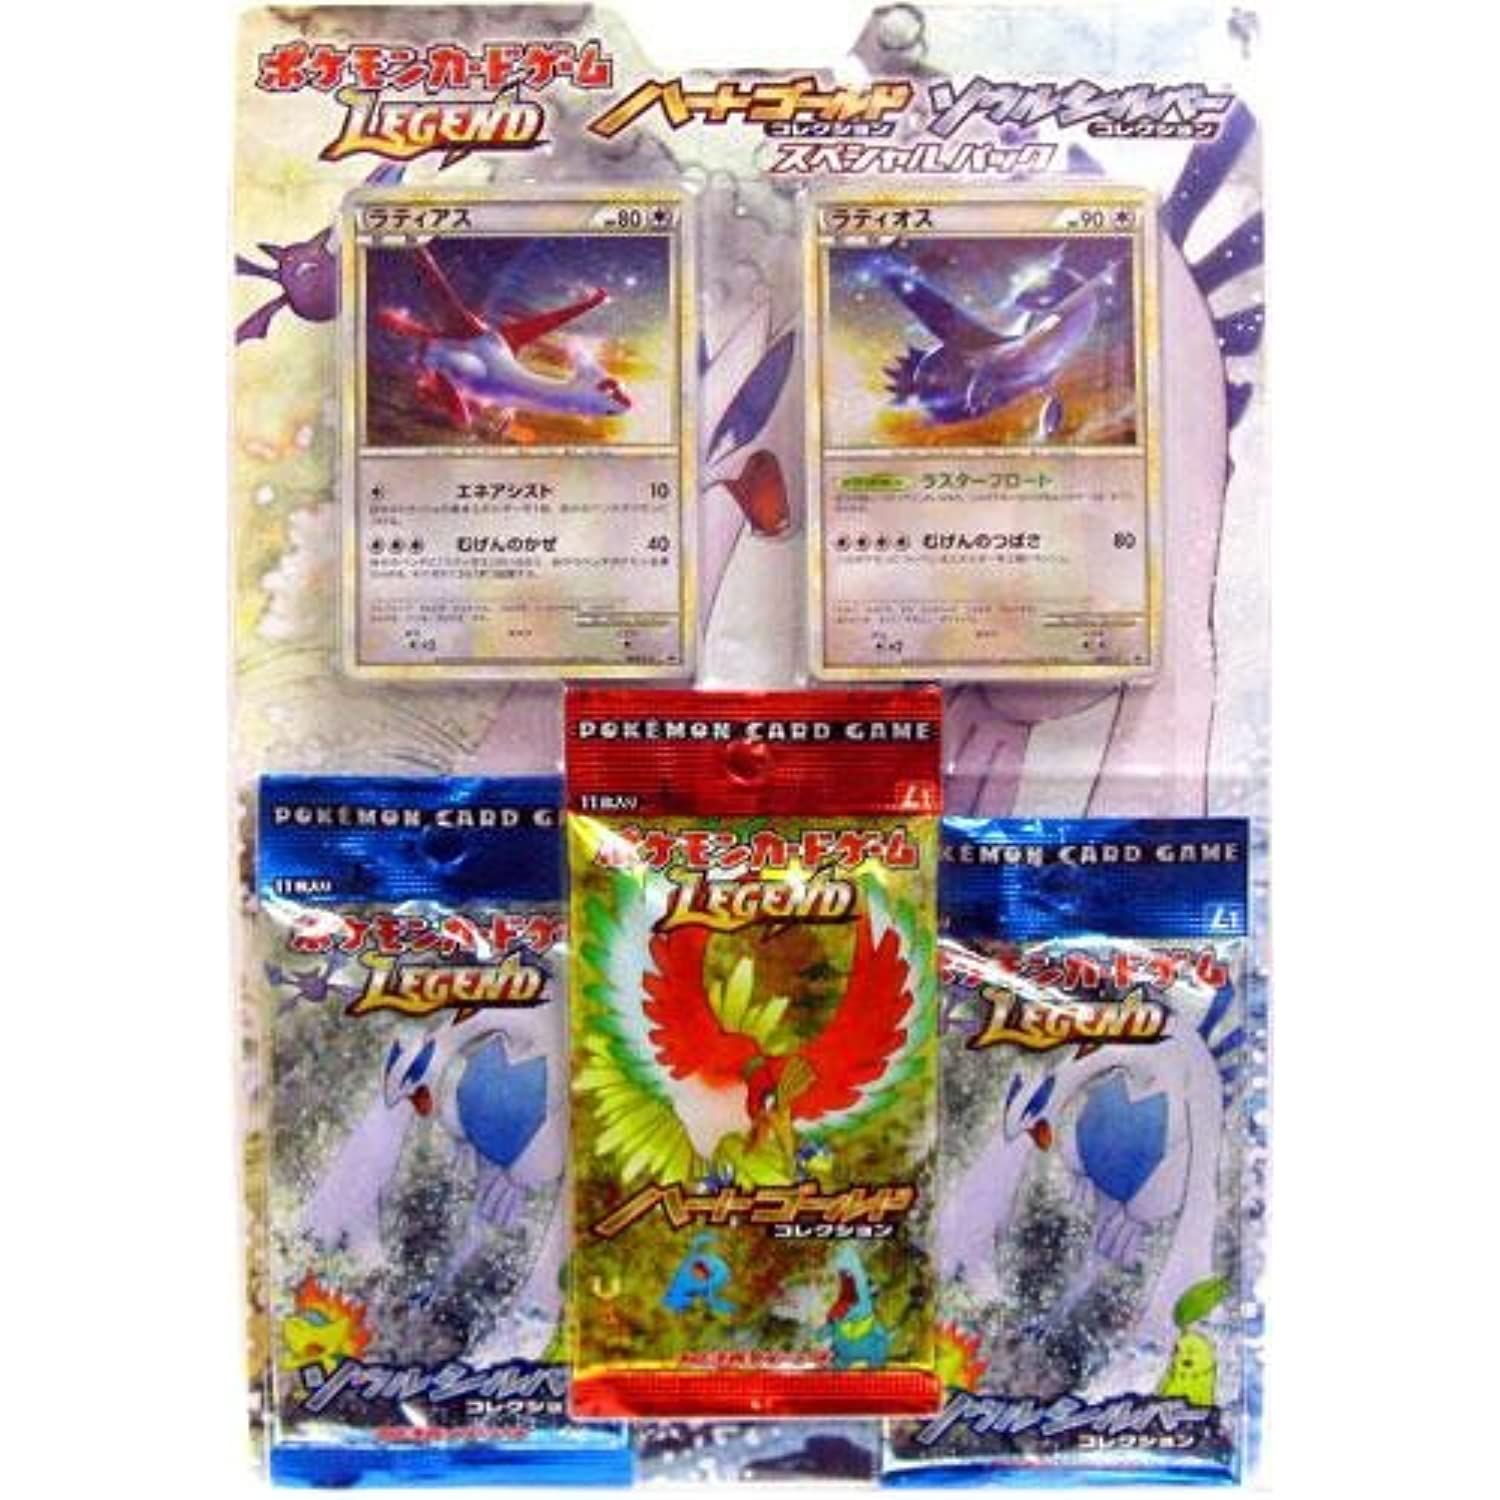 Pokemon Pokemon Card Game LEGEND Soul Soul Soul Silver Collection Heart Gold Collection Special Pack (japan import) 836a4e